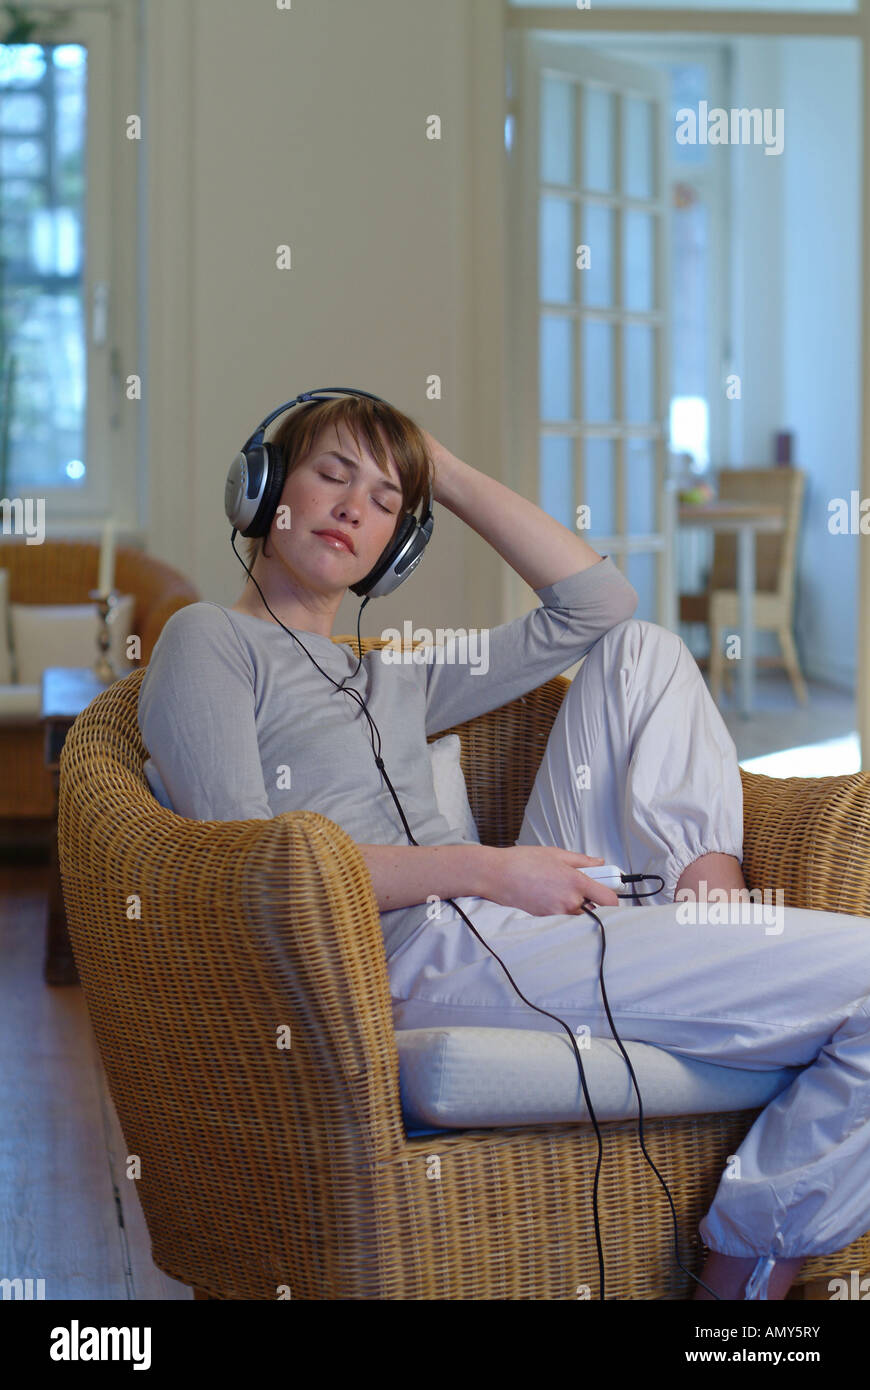 Young woman sitting in a basket-chair, listening to music - Stock Image